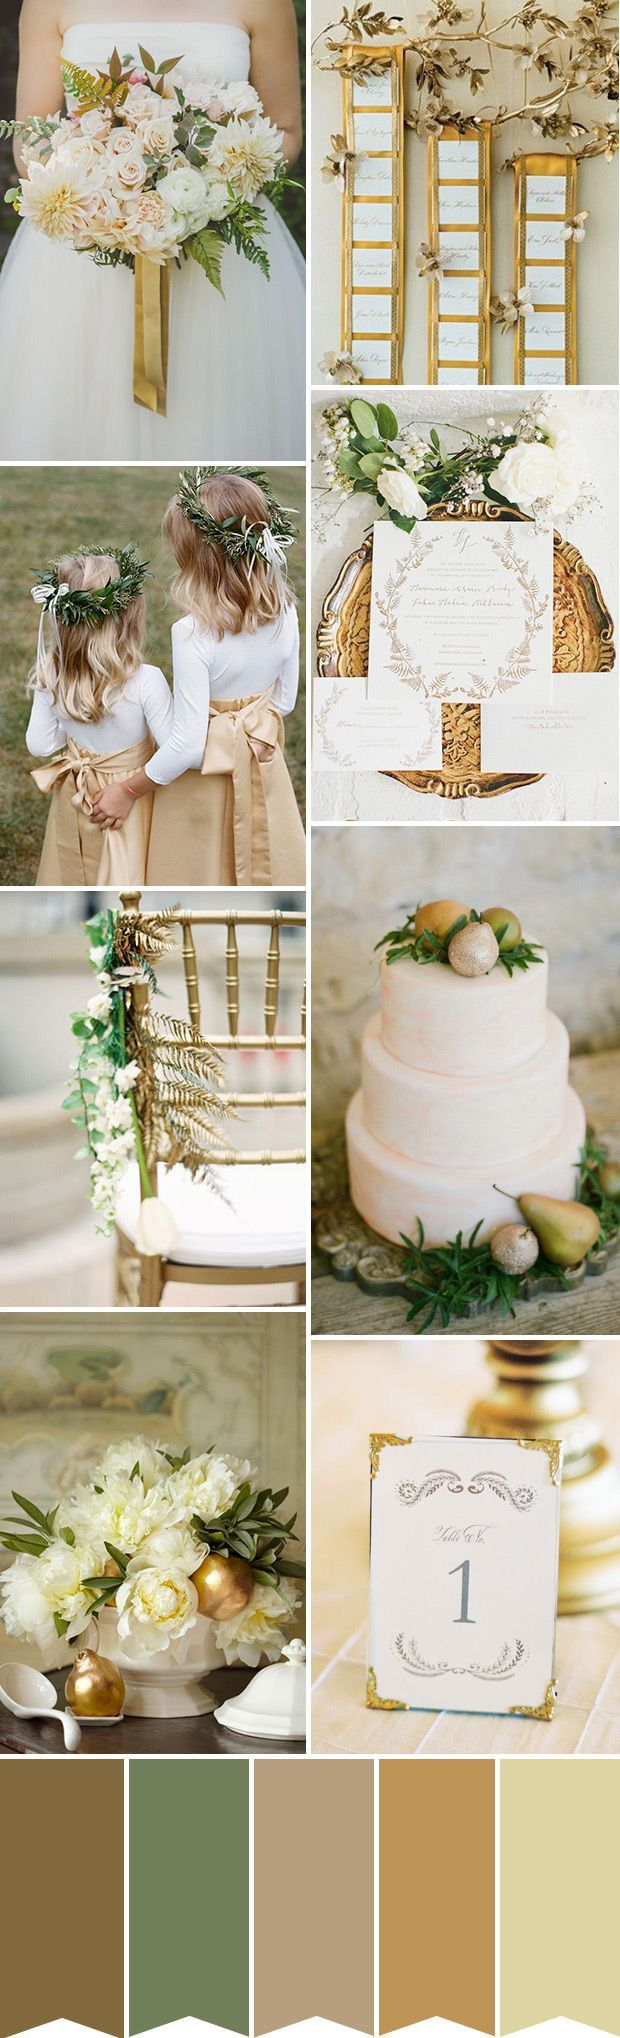 1370 best What we like.... images on Pinterest | Weddings, Table ...